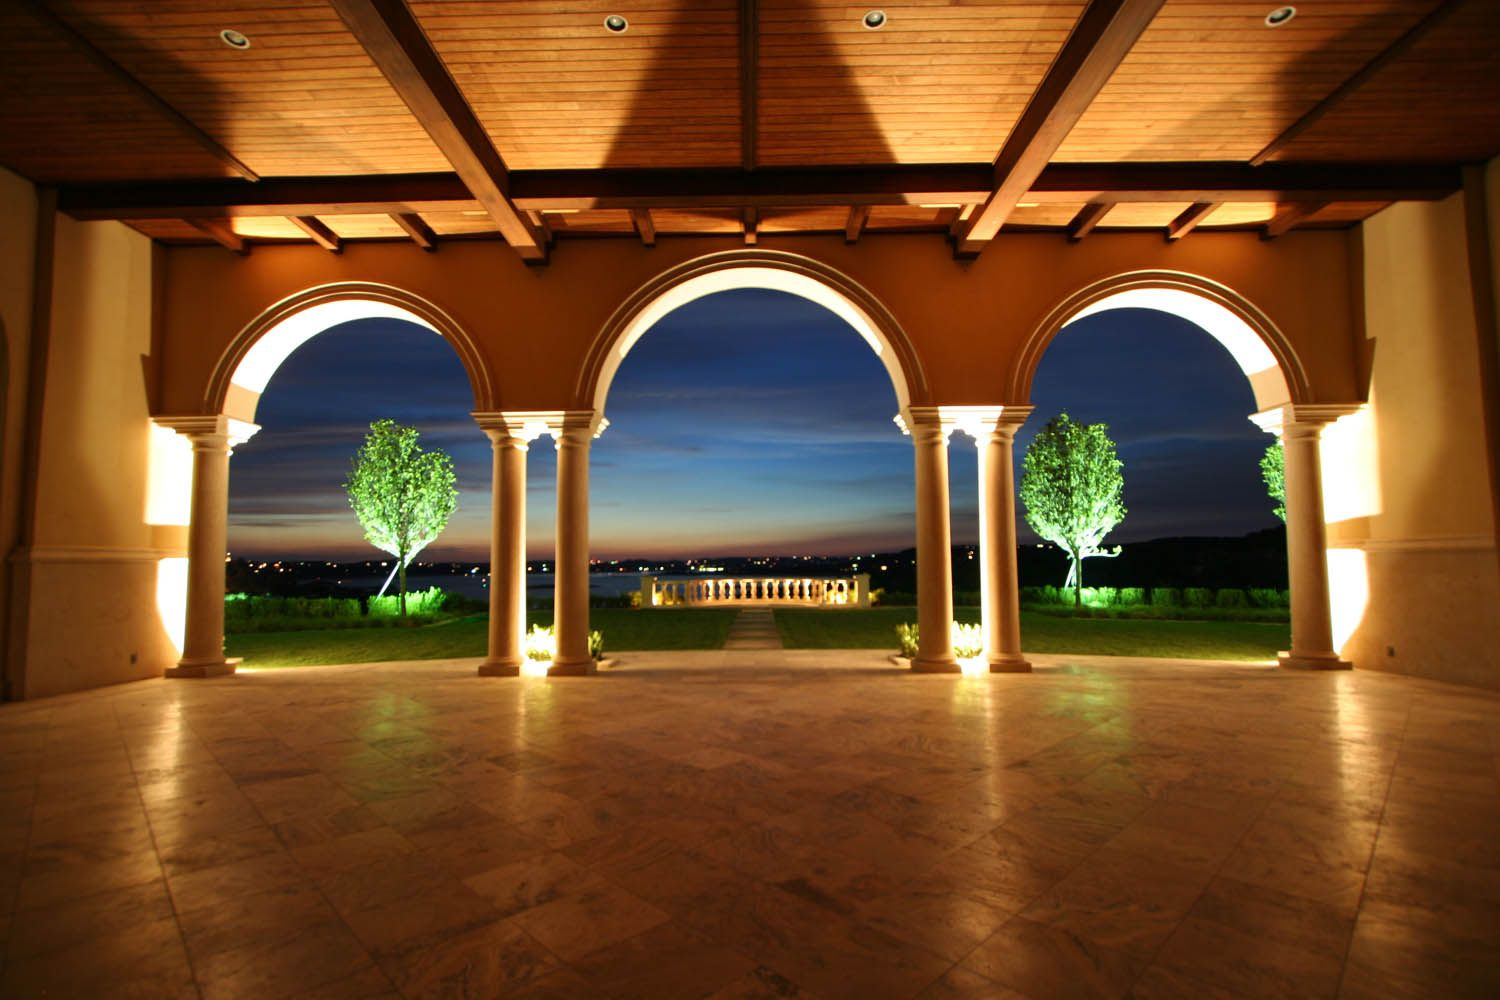 Gallery (With images) Austin texas wedding venues